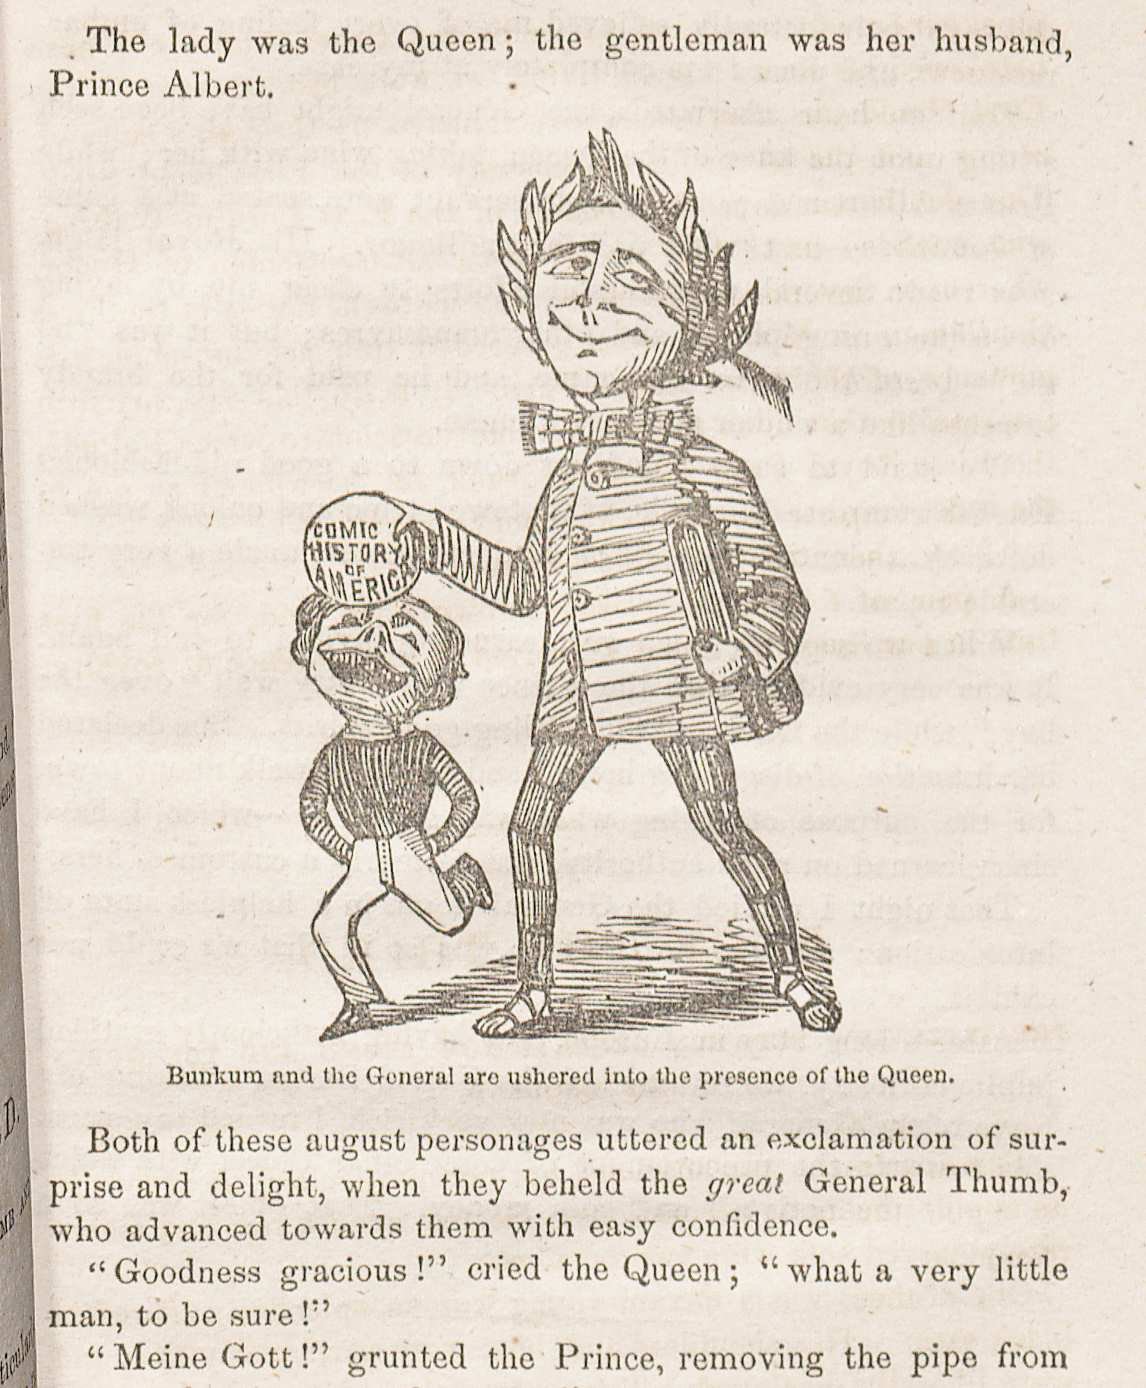 P. T. Barnum (er, Petite Bunkum) and General Tom Thumb make the acquaintance of Queen Victoria and Prince Albert, in The autobiography of Petite Bunkum, the showman. (New york: P. F. Harris, 1855)